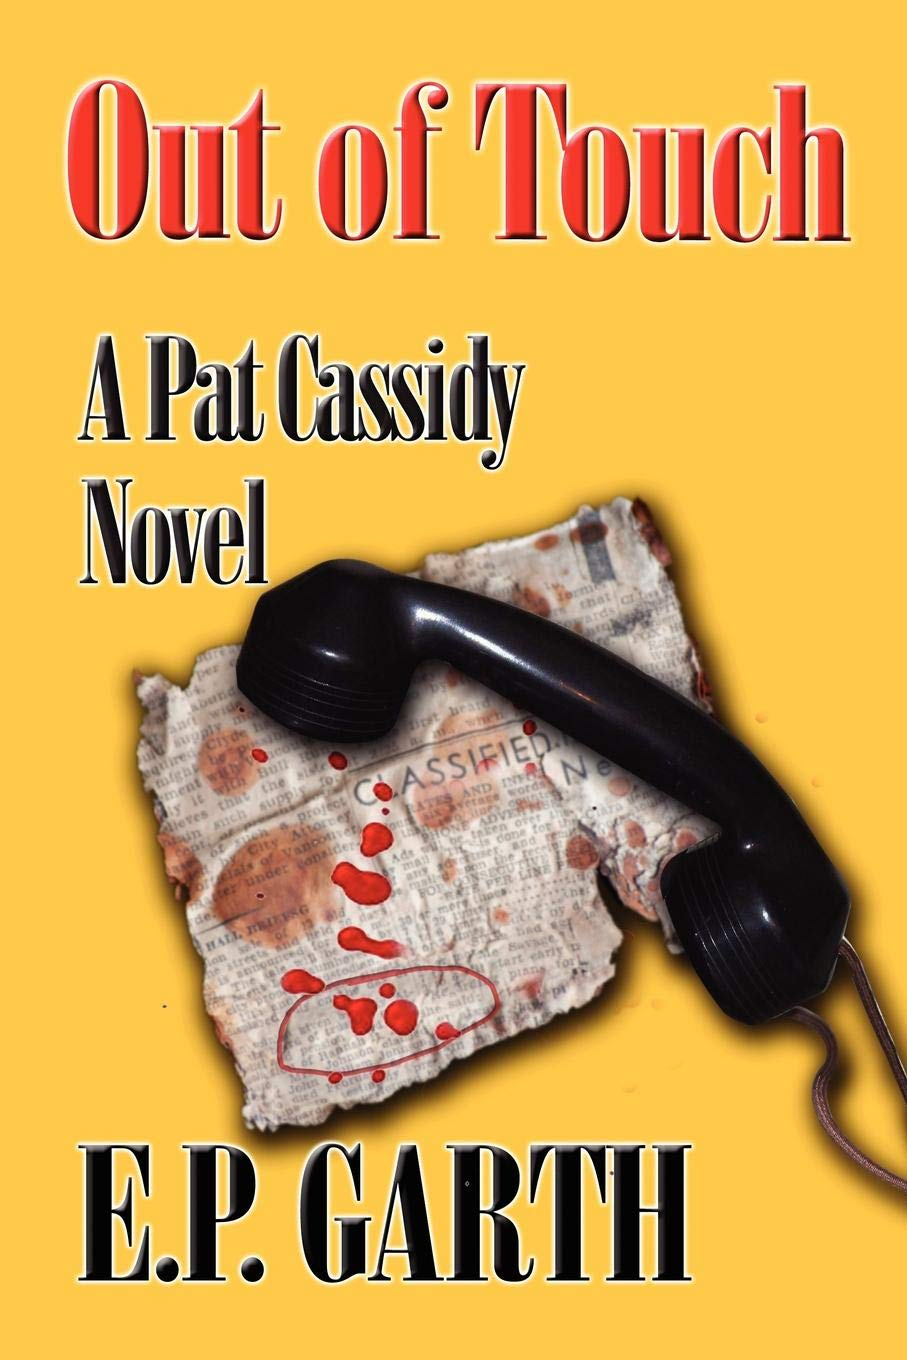 OUT OF TOUCH: A Pat Cassidy Novel: E.P. Garth: 9781609102876 ...